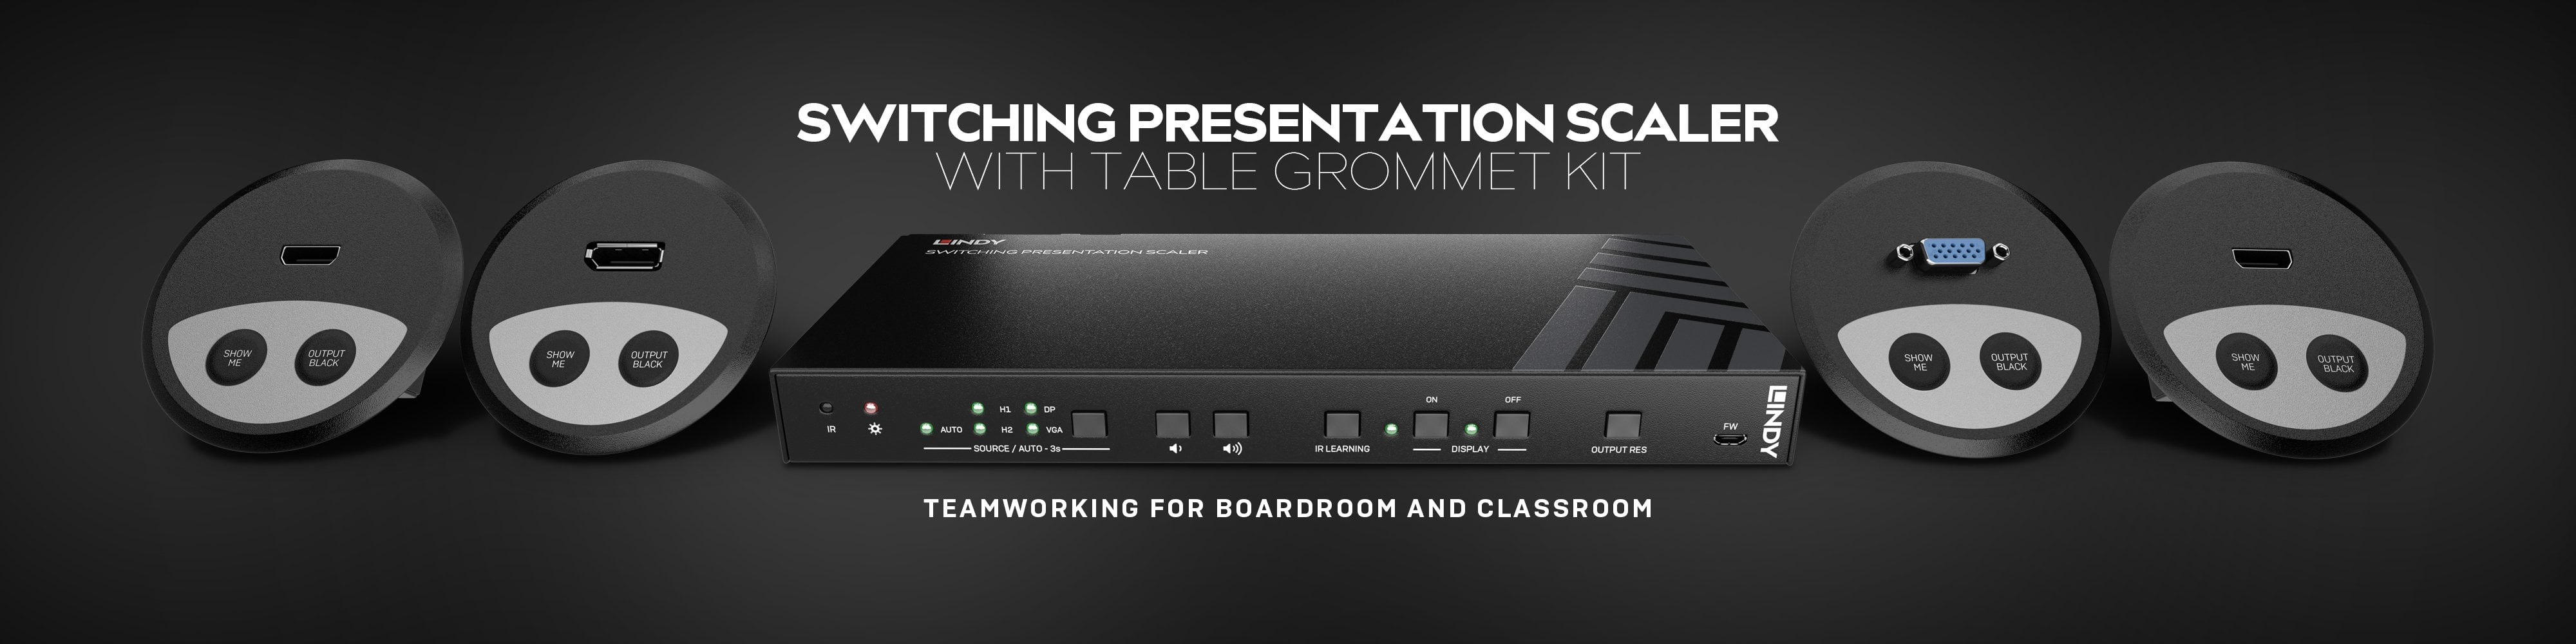 Switching Presentation Scaler with Grommet Kit